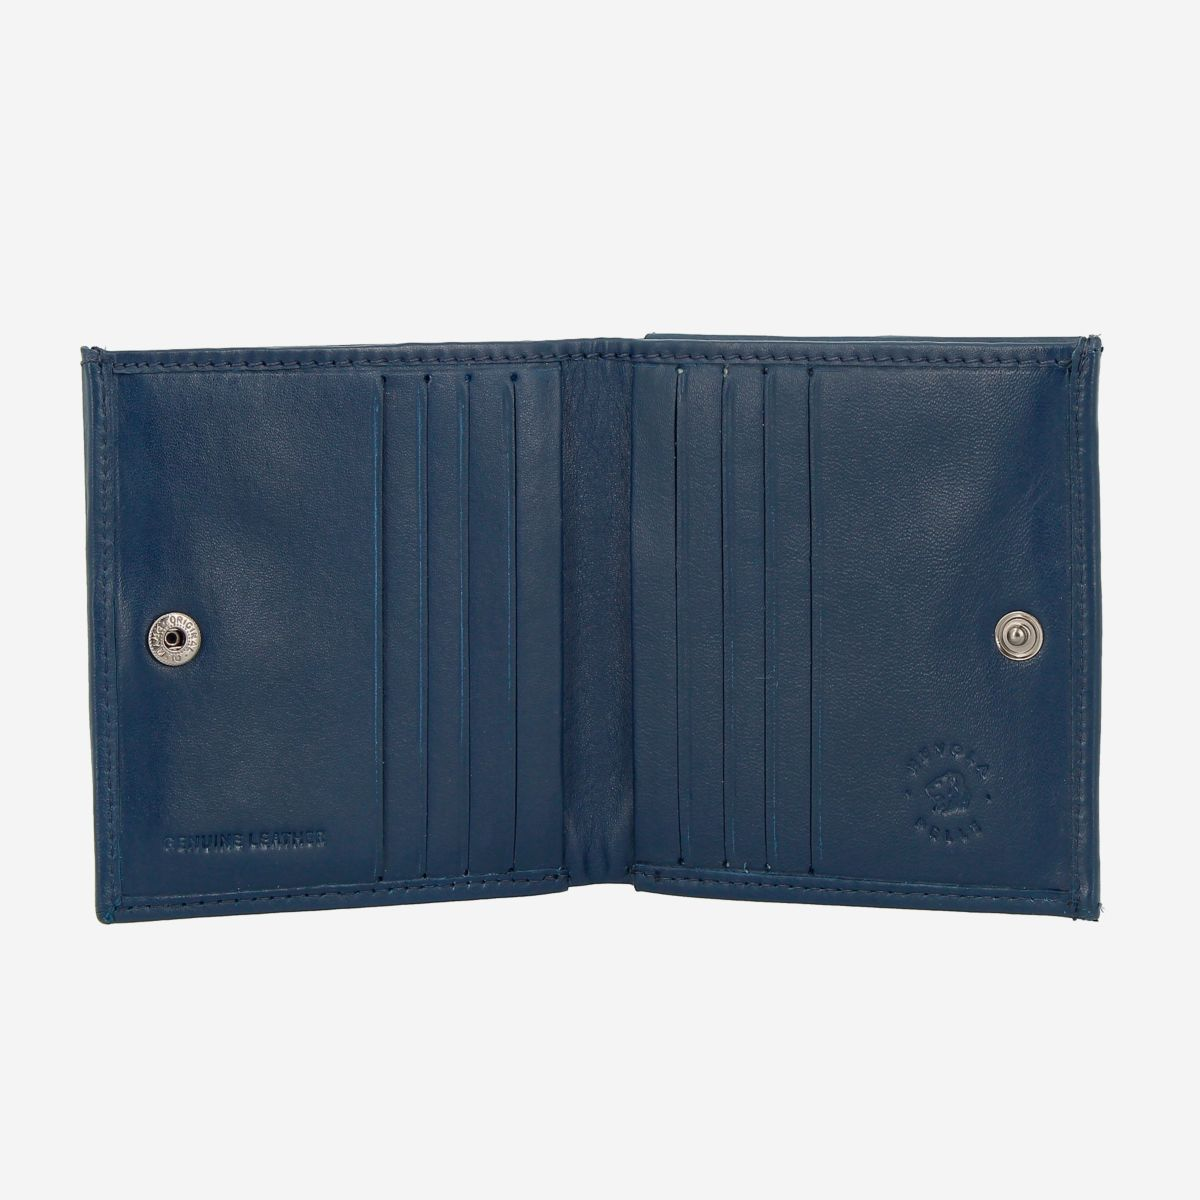 NUVOLA PELLE Small Unique Leather Wallet  - Blue